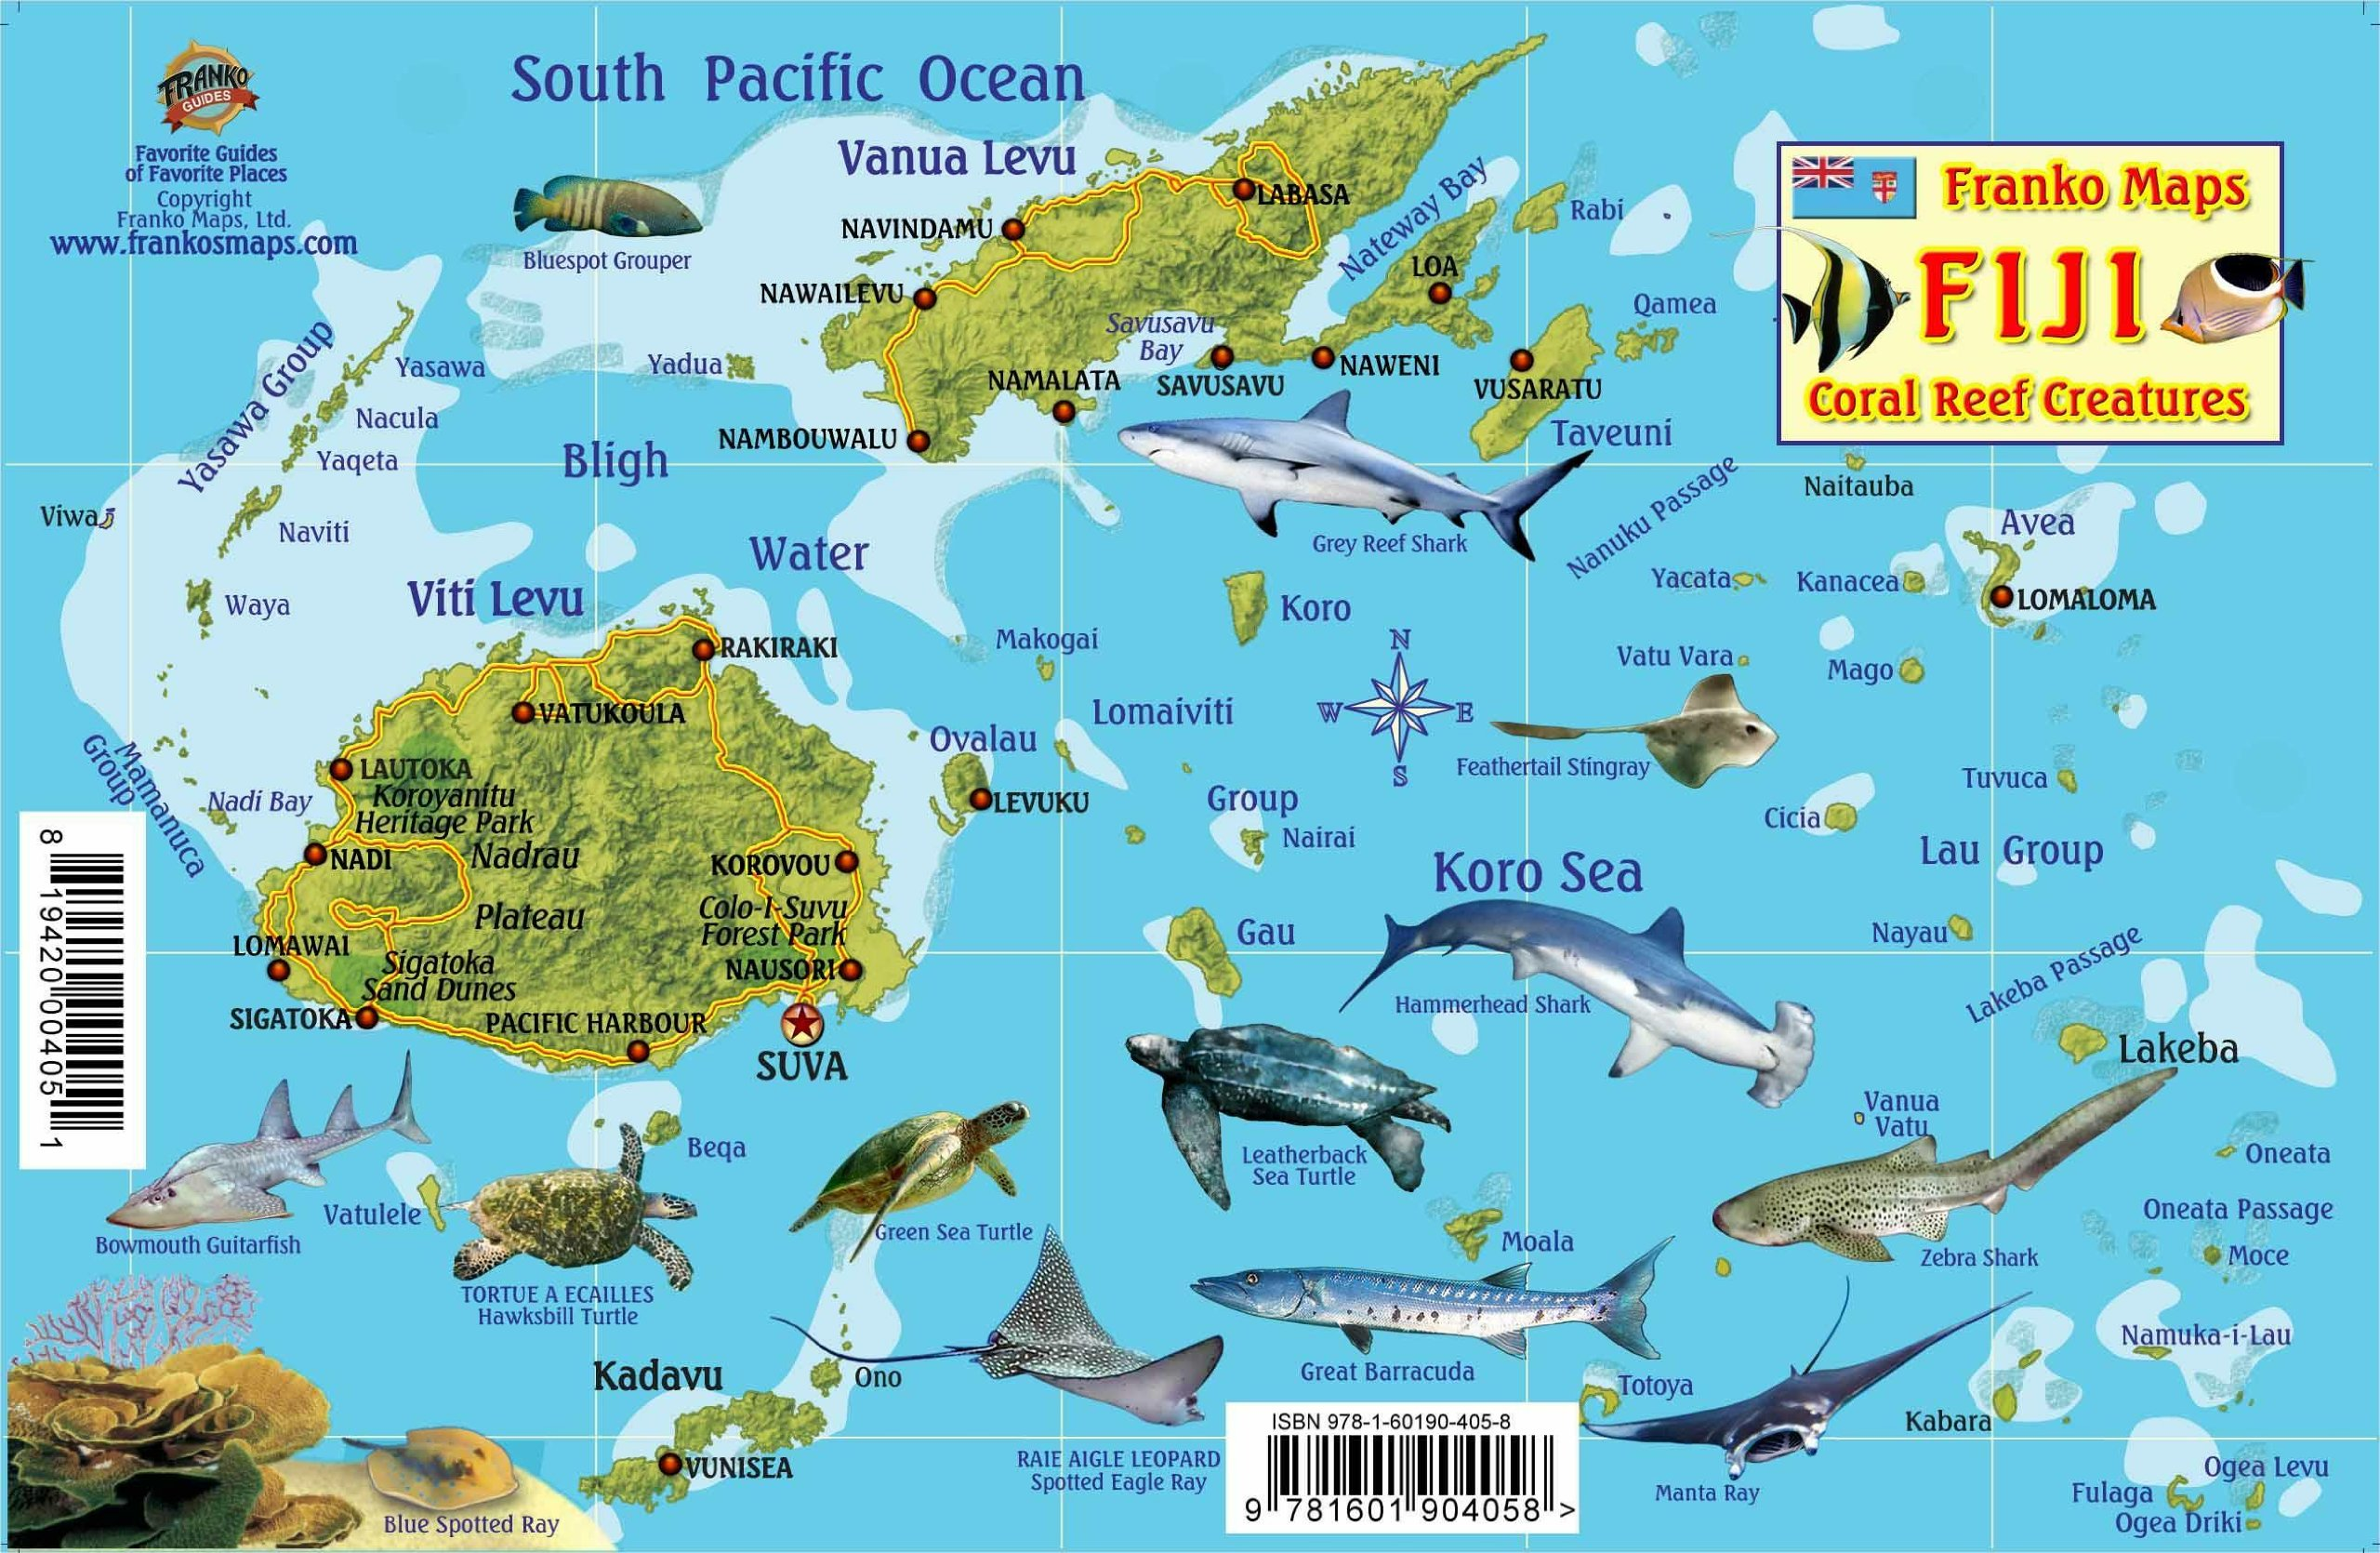 Fiji map reef creatures guide franko maps laminated fish card fiji map reef creatures guide franko maps laminated fish card fiji map hd gumiabroncs